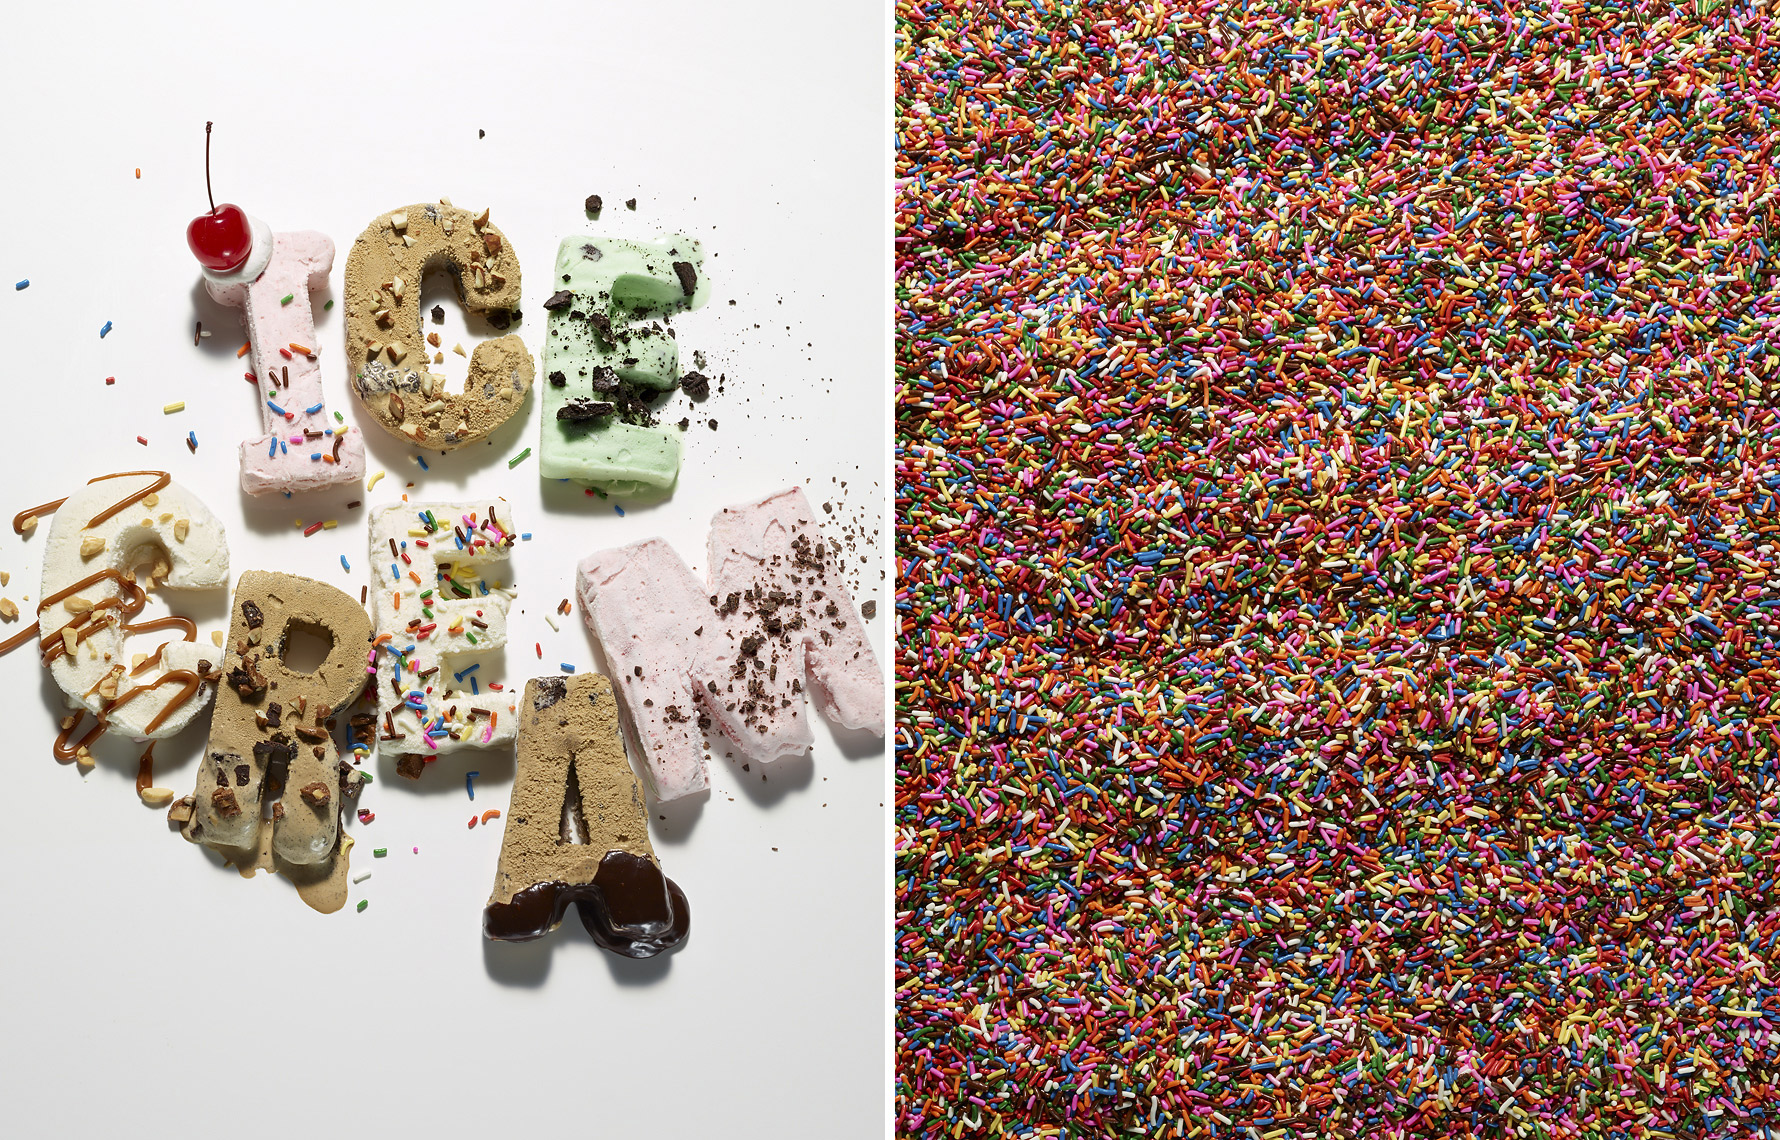 Glasshouse Assignment - Kang Kim - Food Photography - Ice Cream with Sprinkles